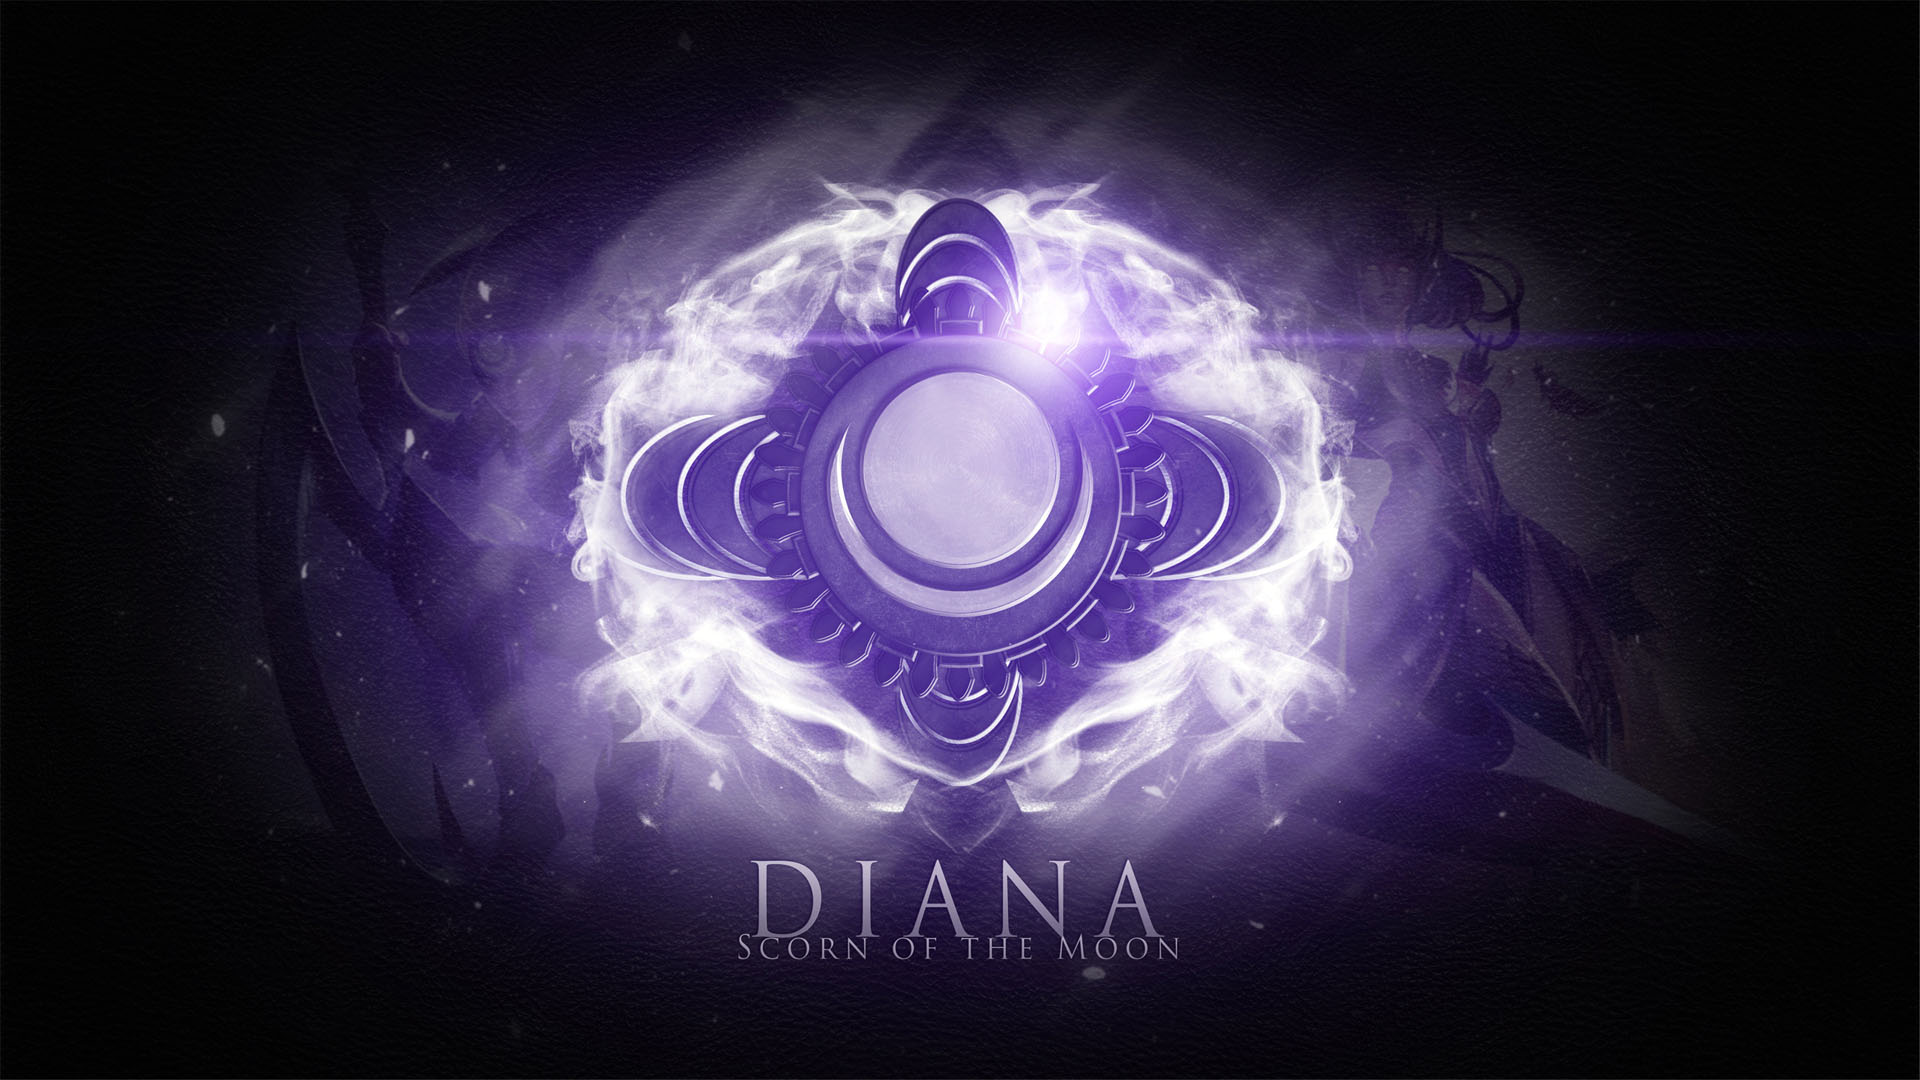 League of Legends Diana symbol